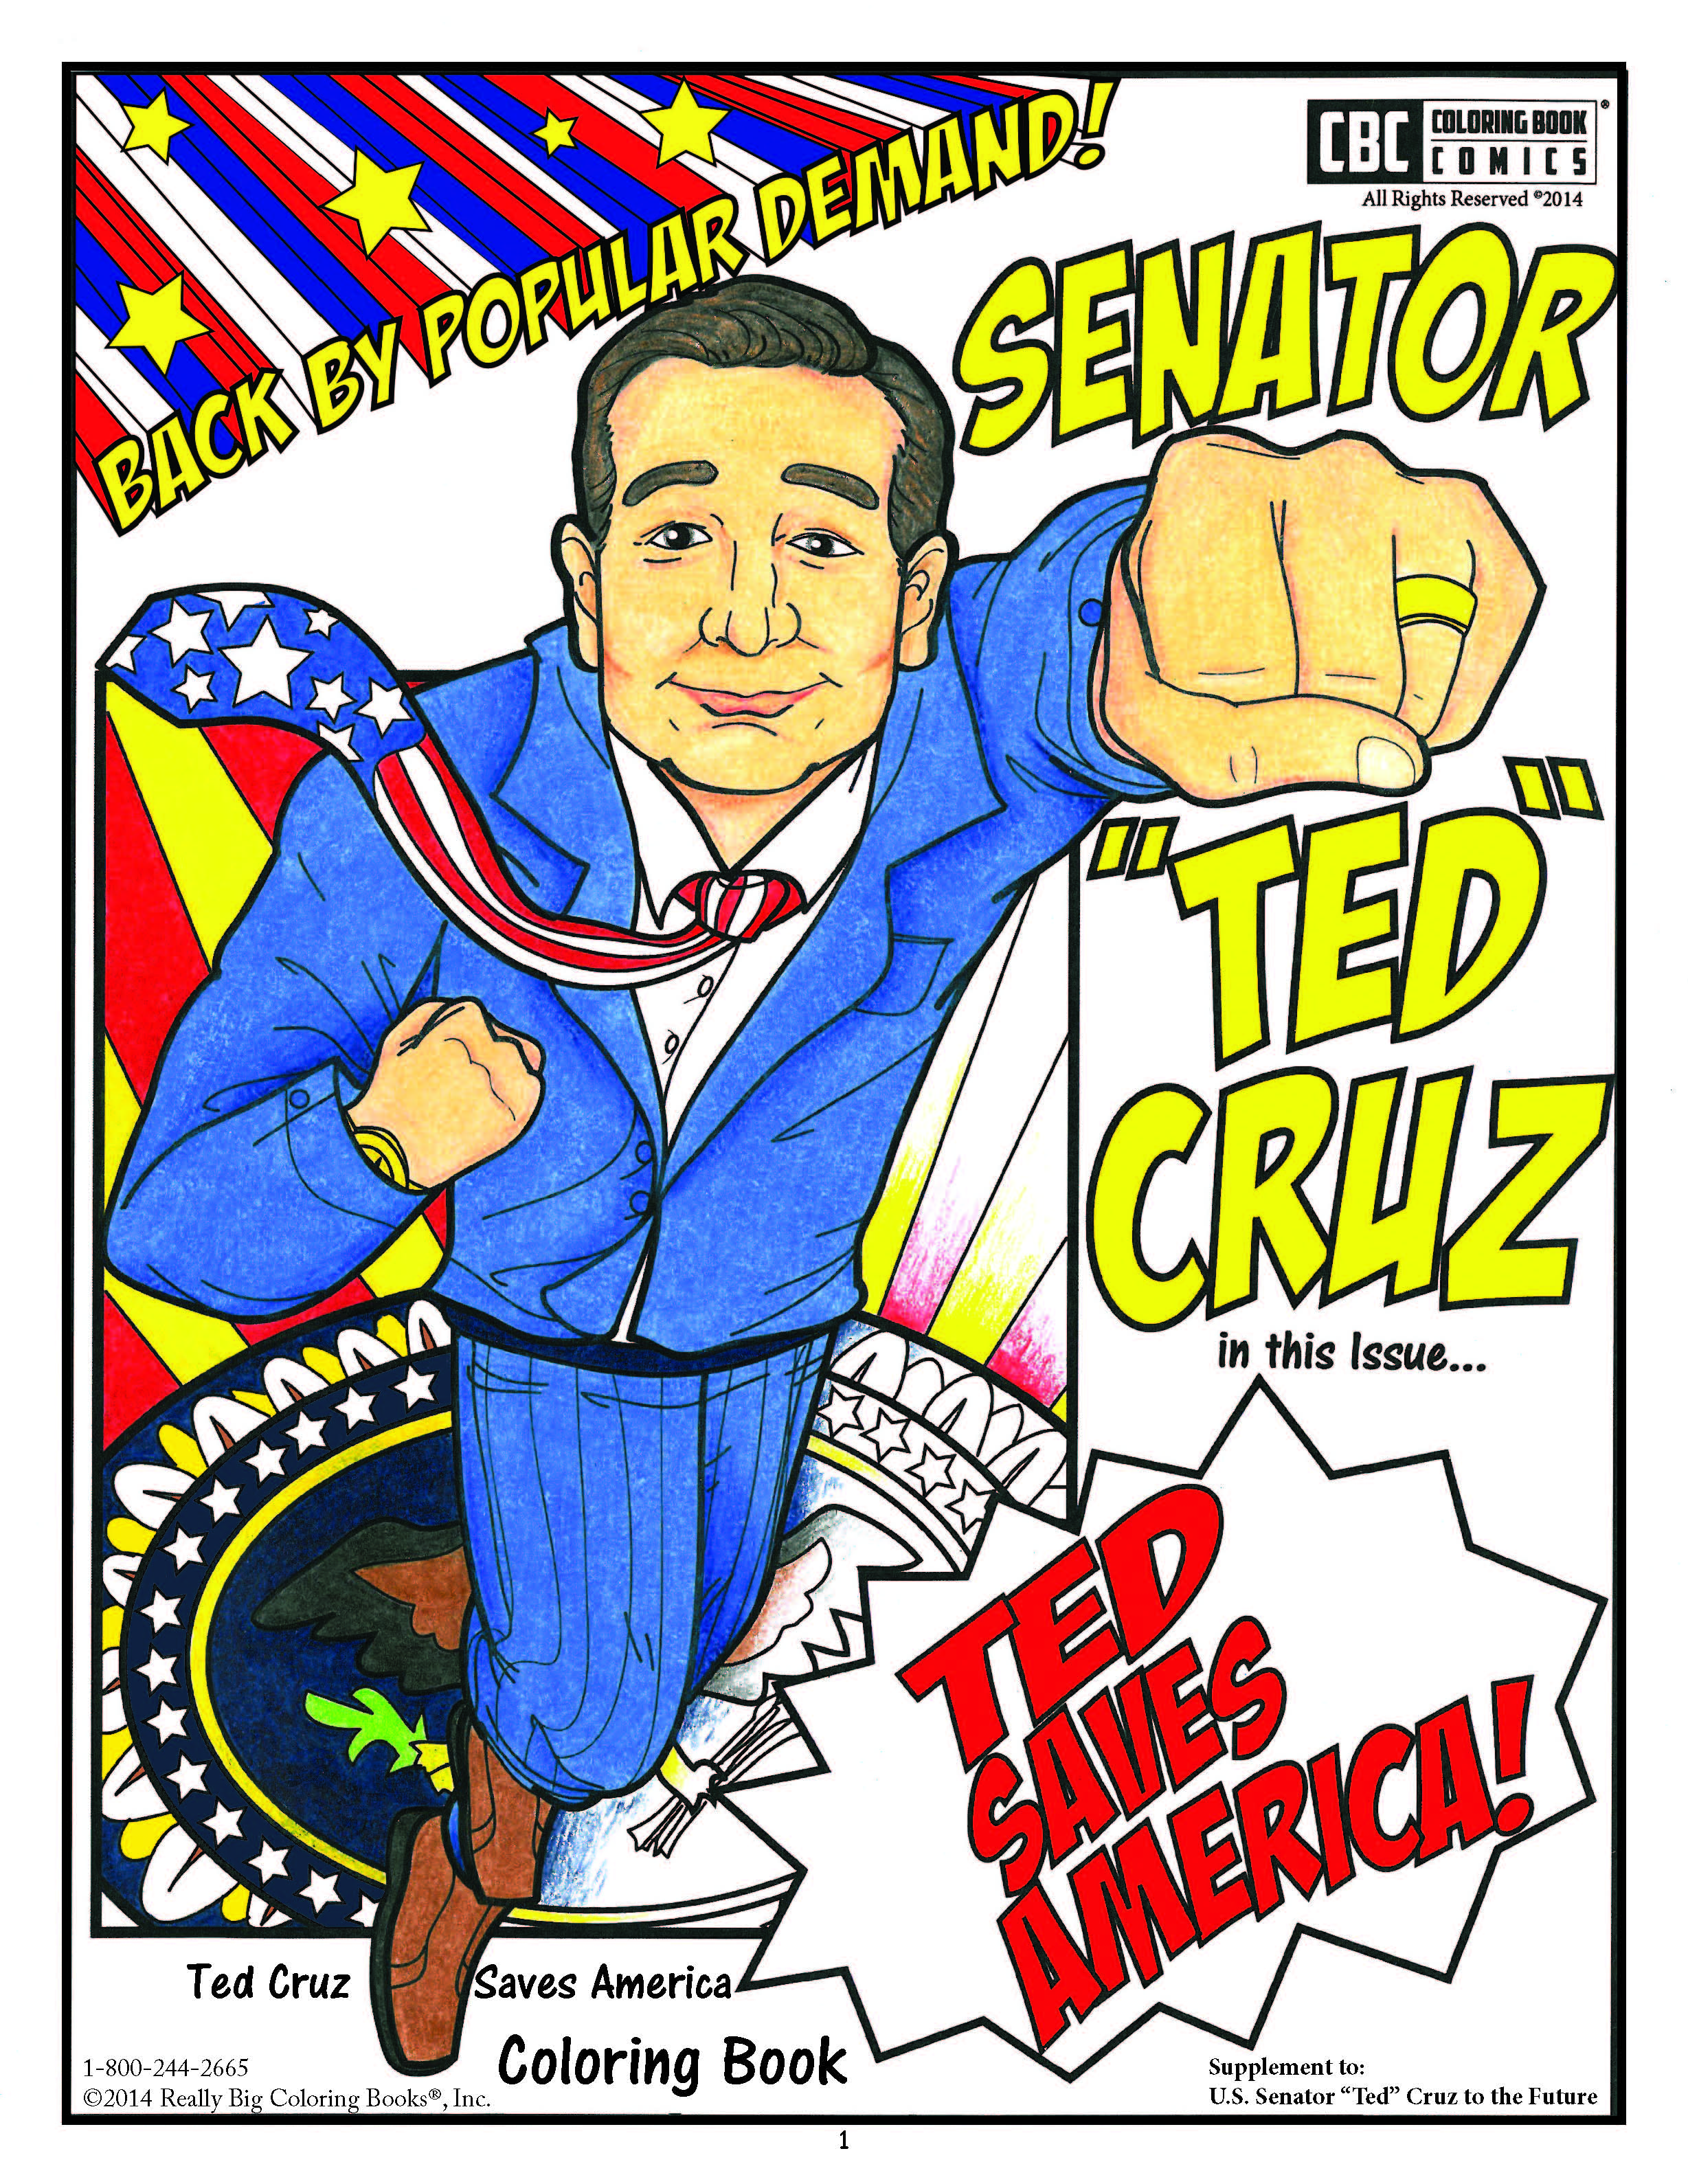 New Ted Cruz Coloring Book Takes Him to the White House | US News